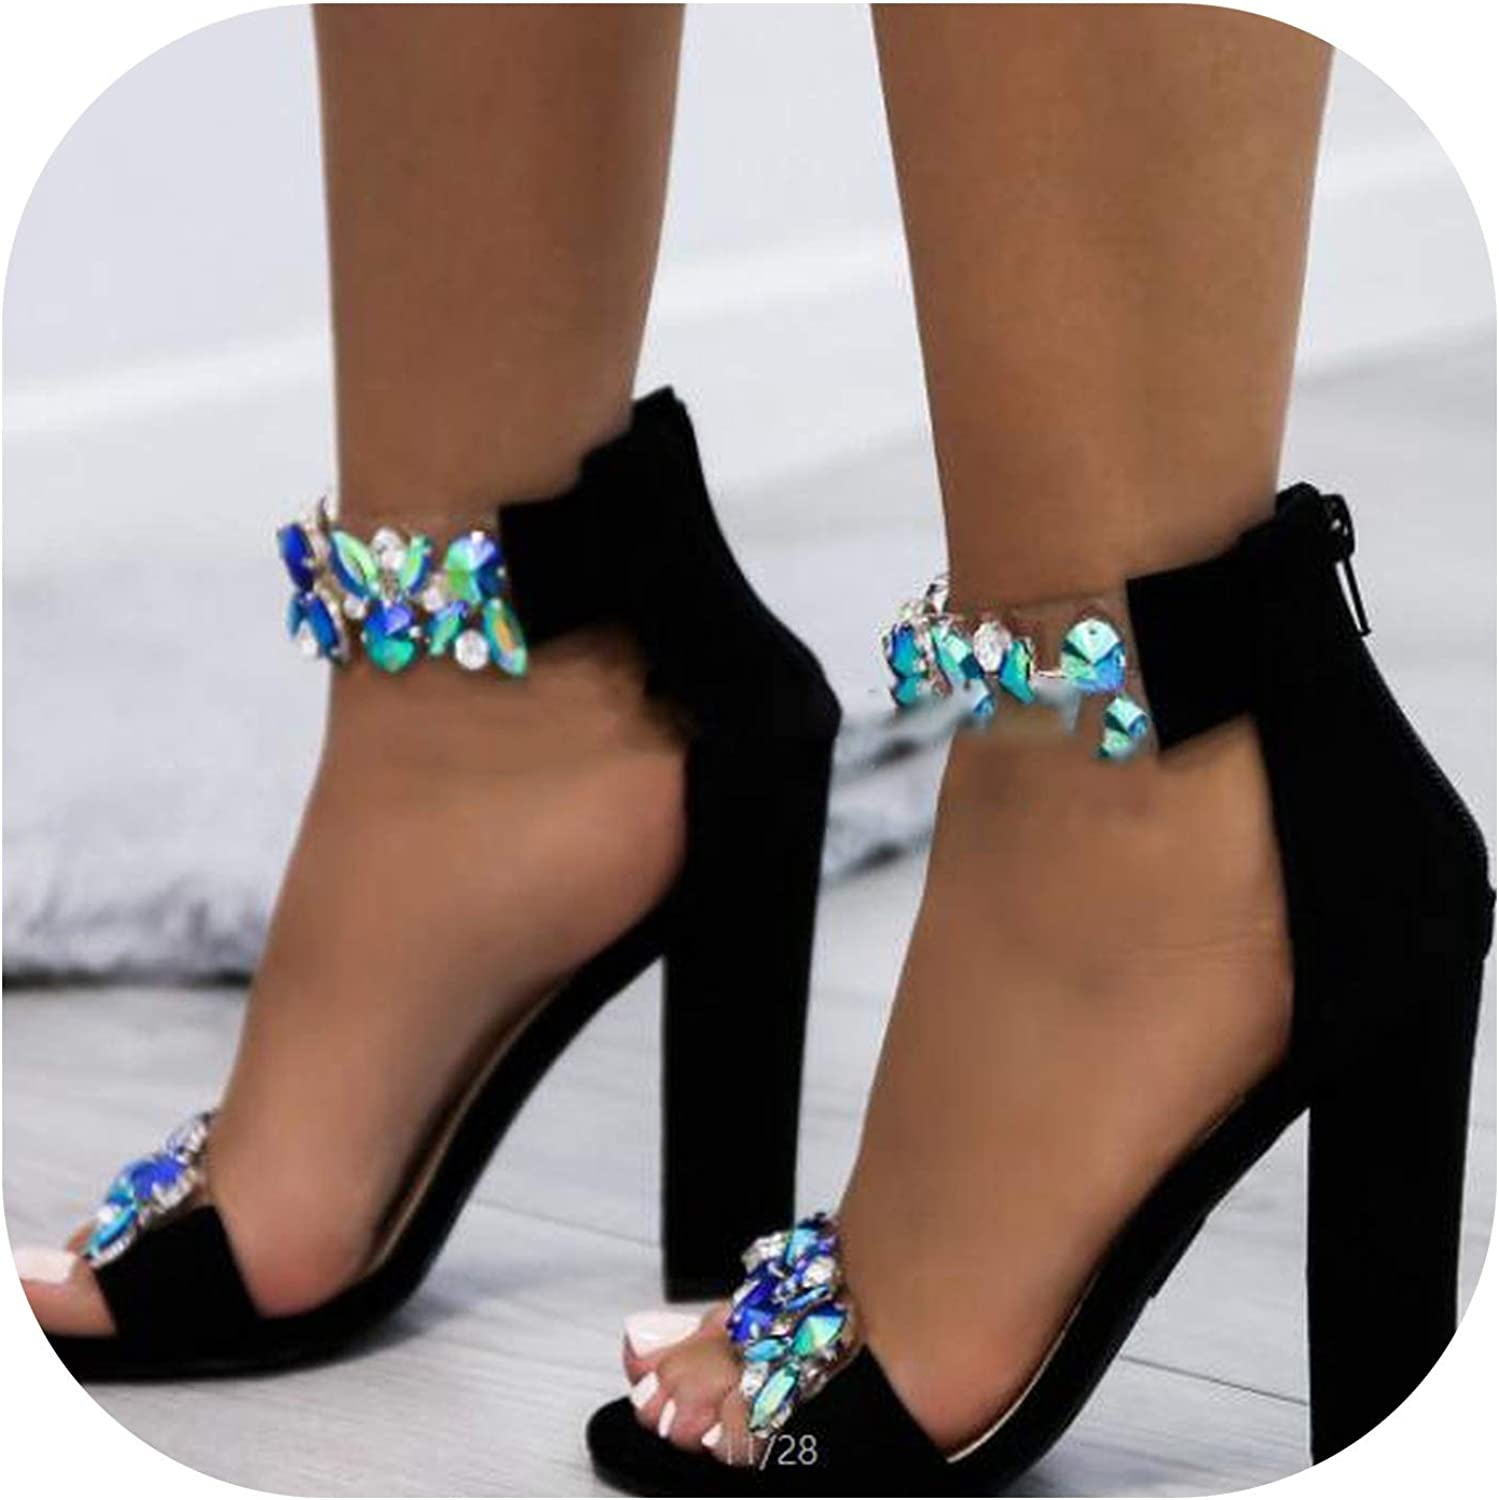 Summer Women colorful Pumps High Heels Sandals Ladies Wedding Party Fashion Ankle Strap Sandals